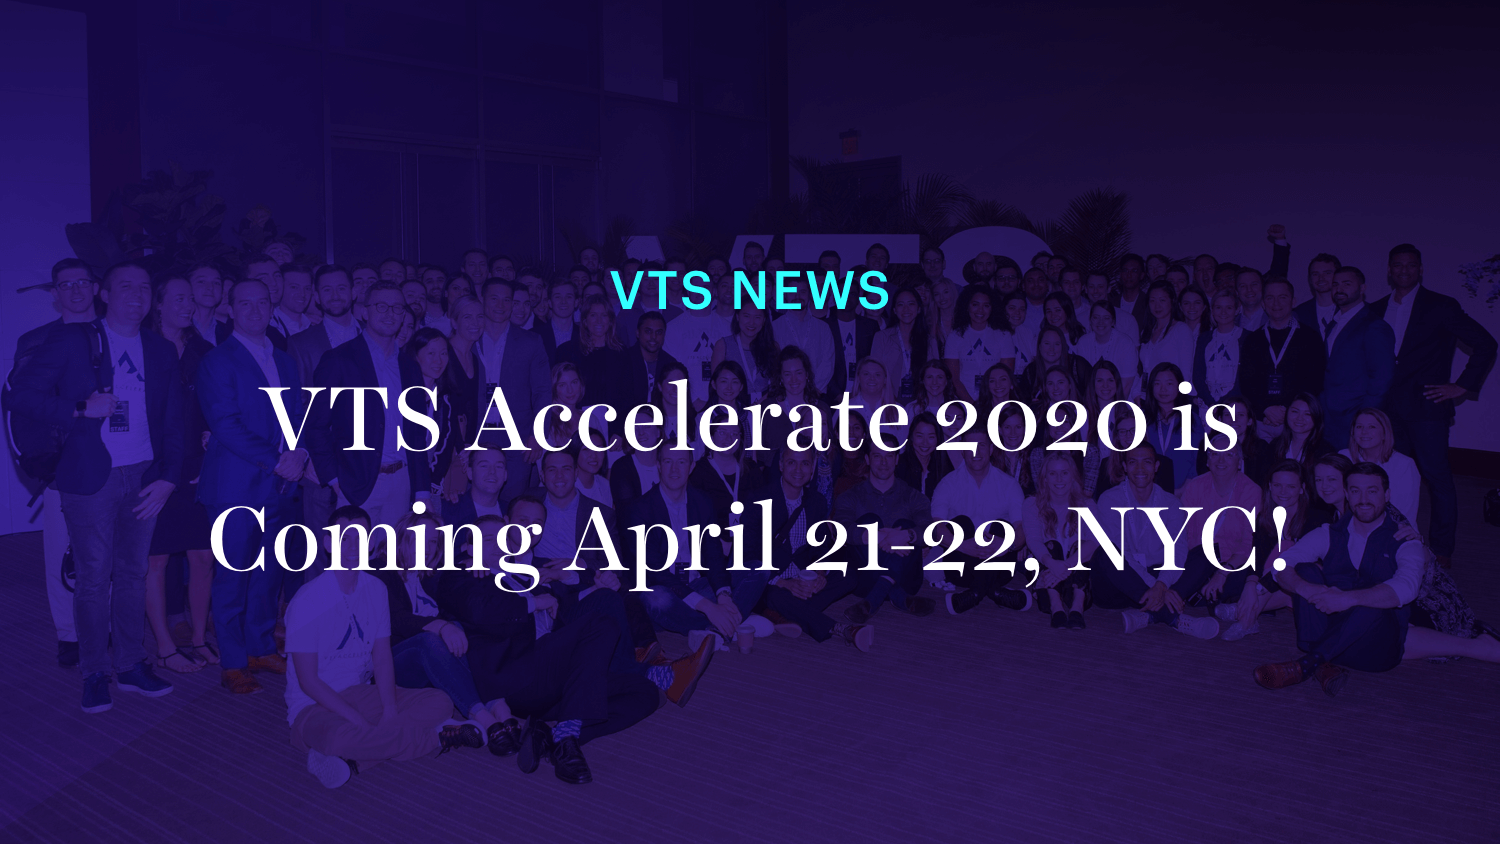 VTS Accelerate 2020 is Coming April 21-22, NYC!